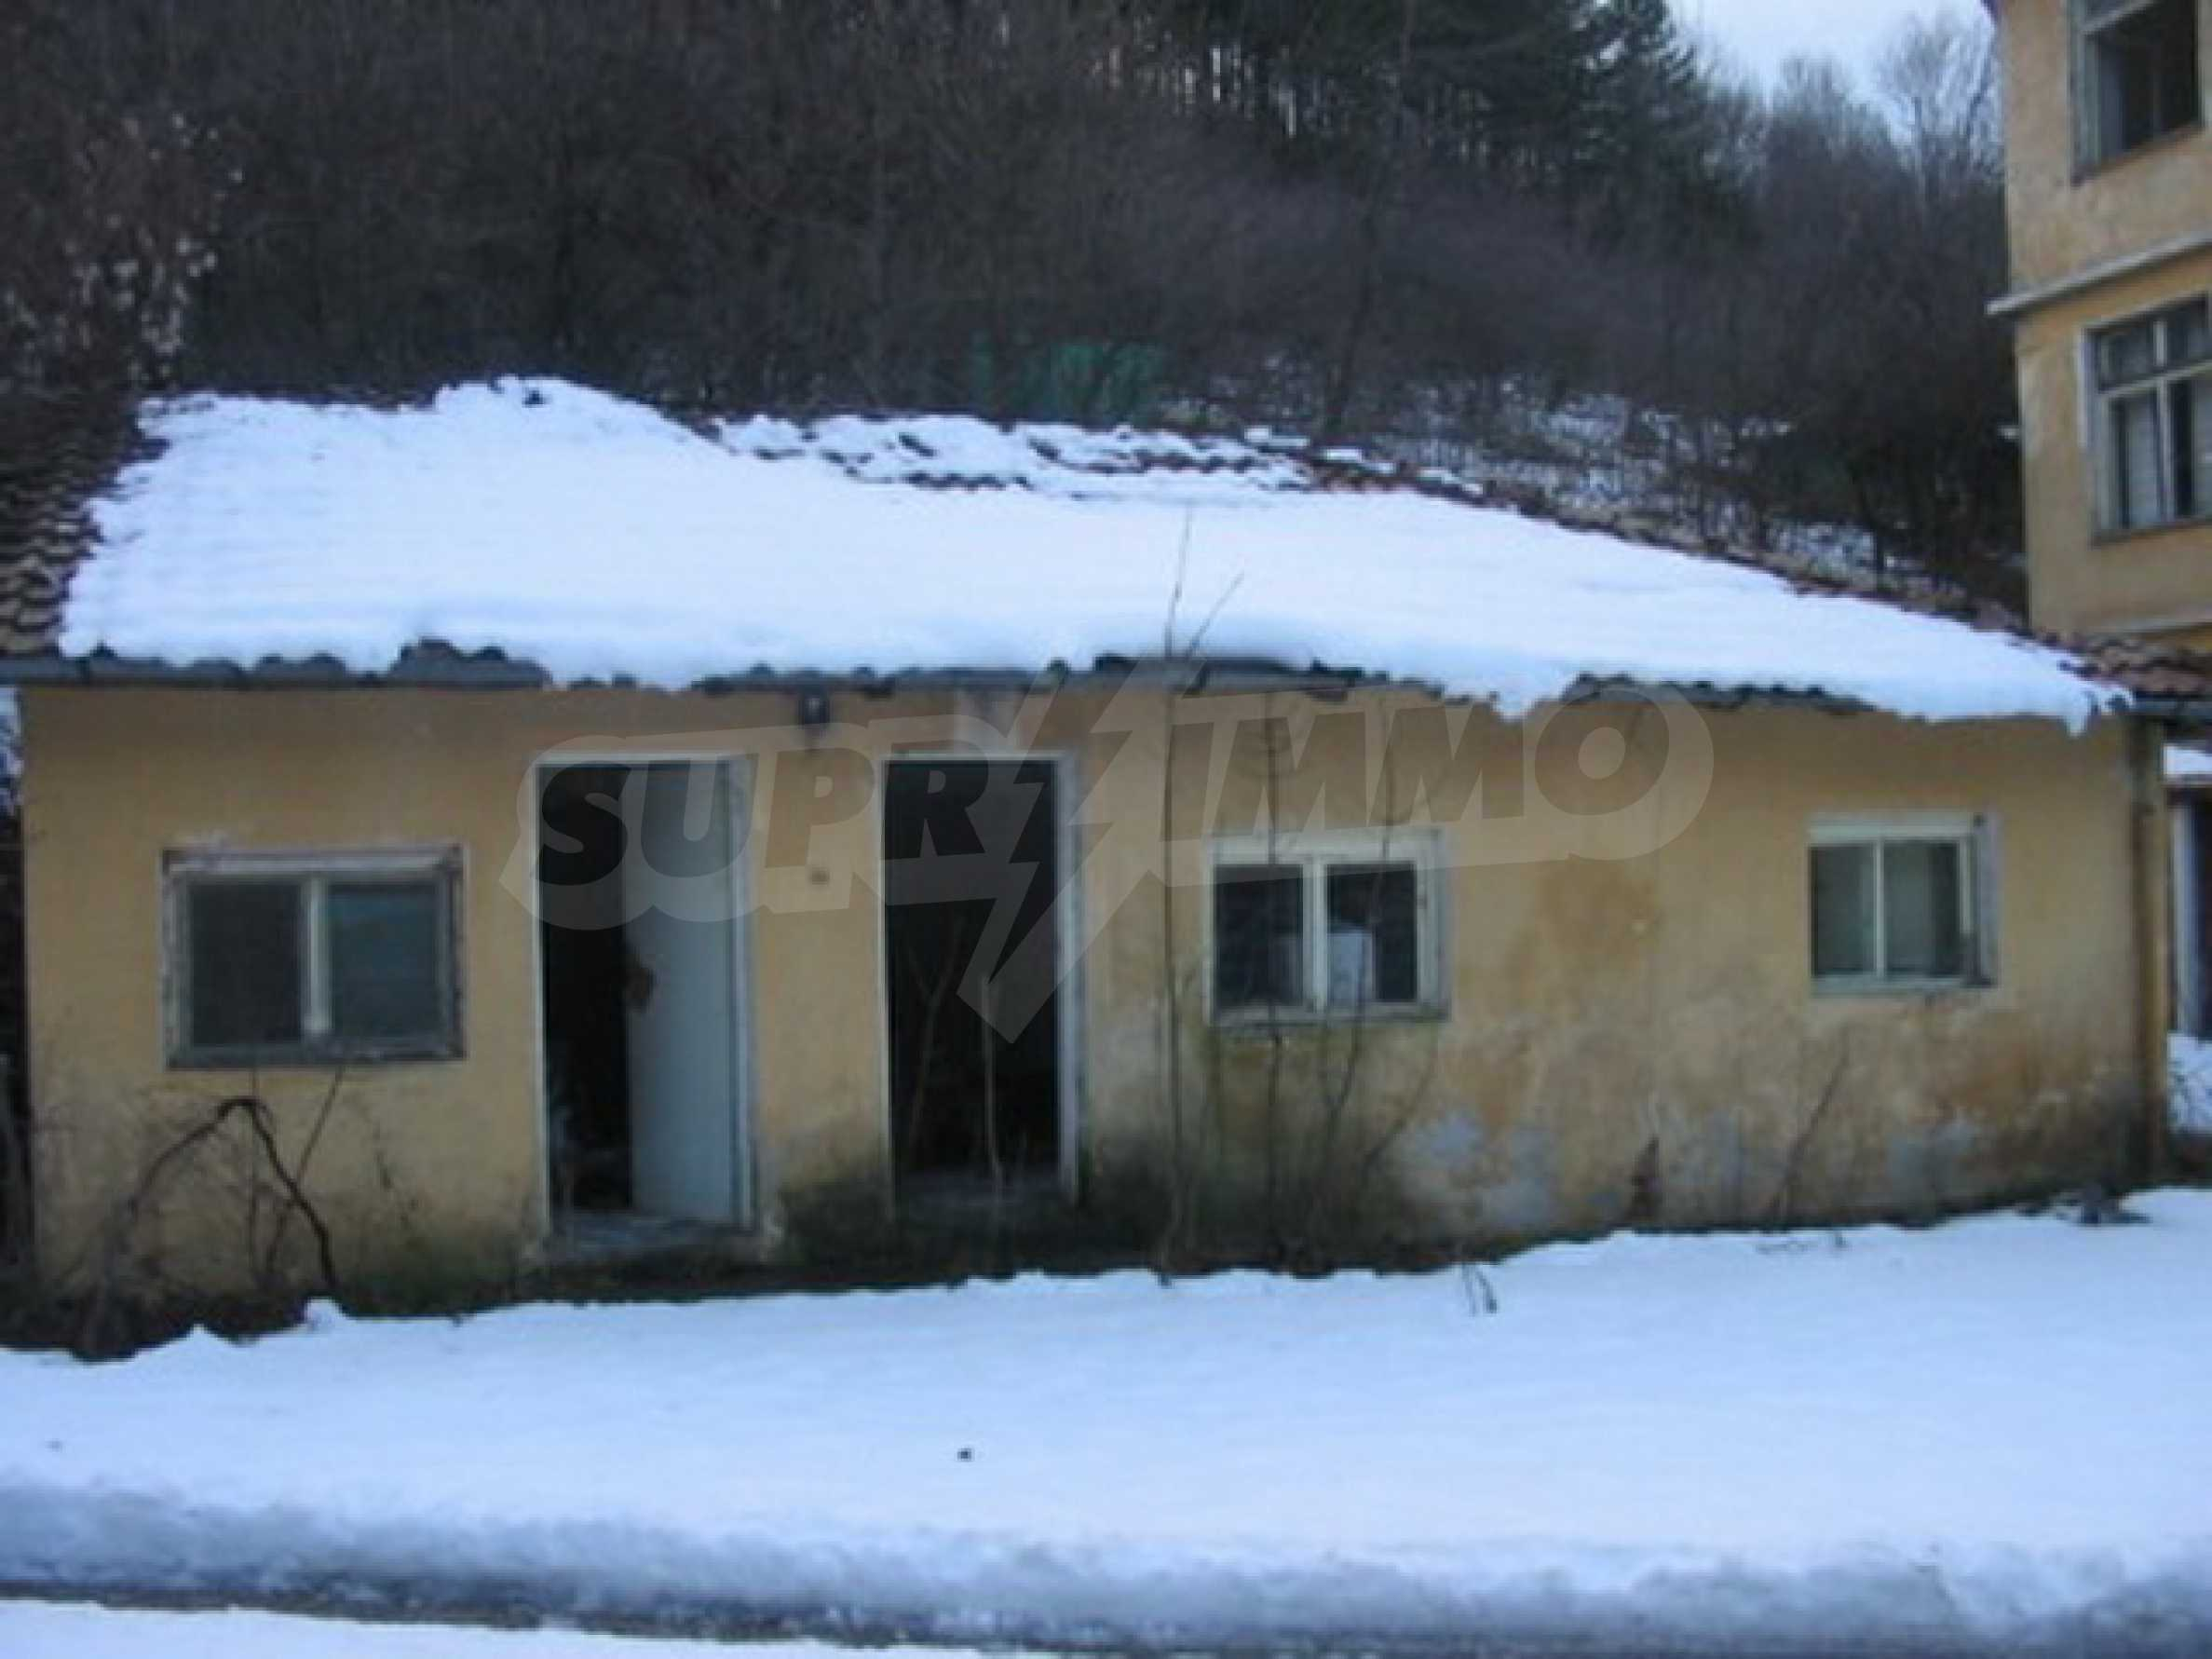 Hotel in need of complete renovation 4